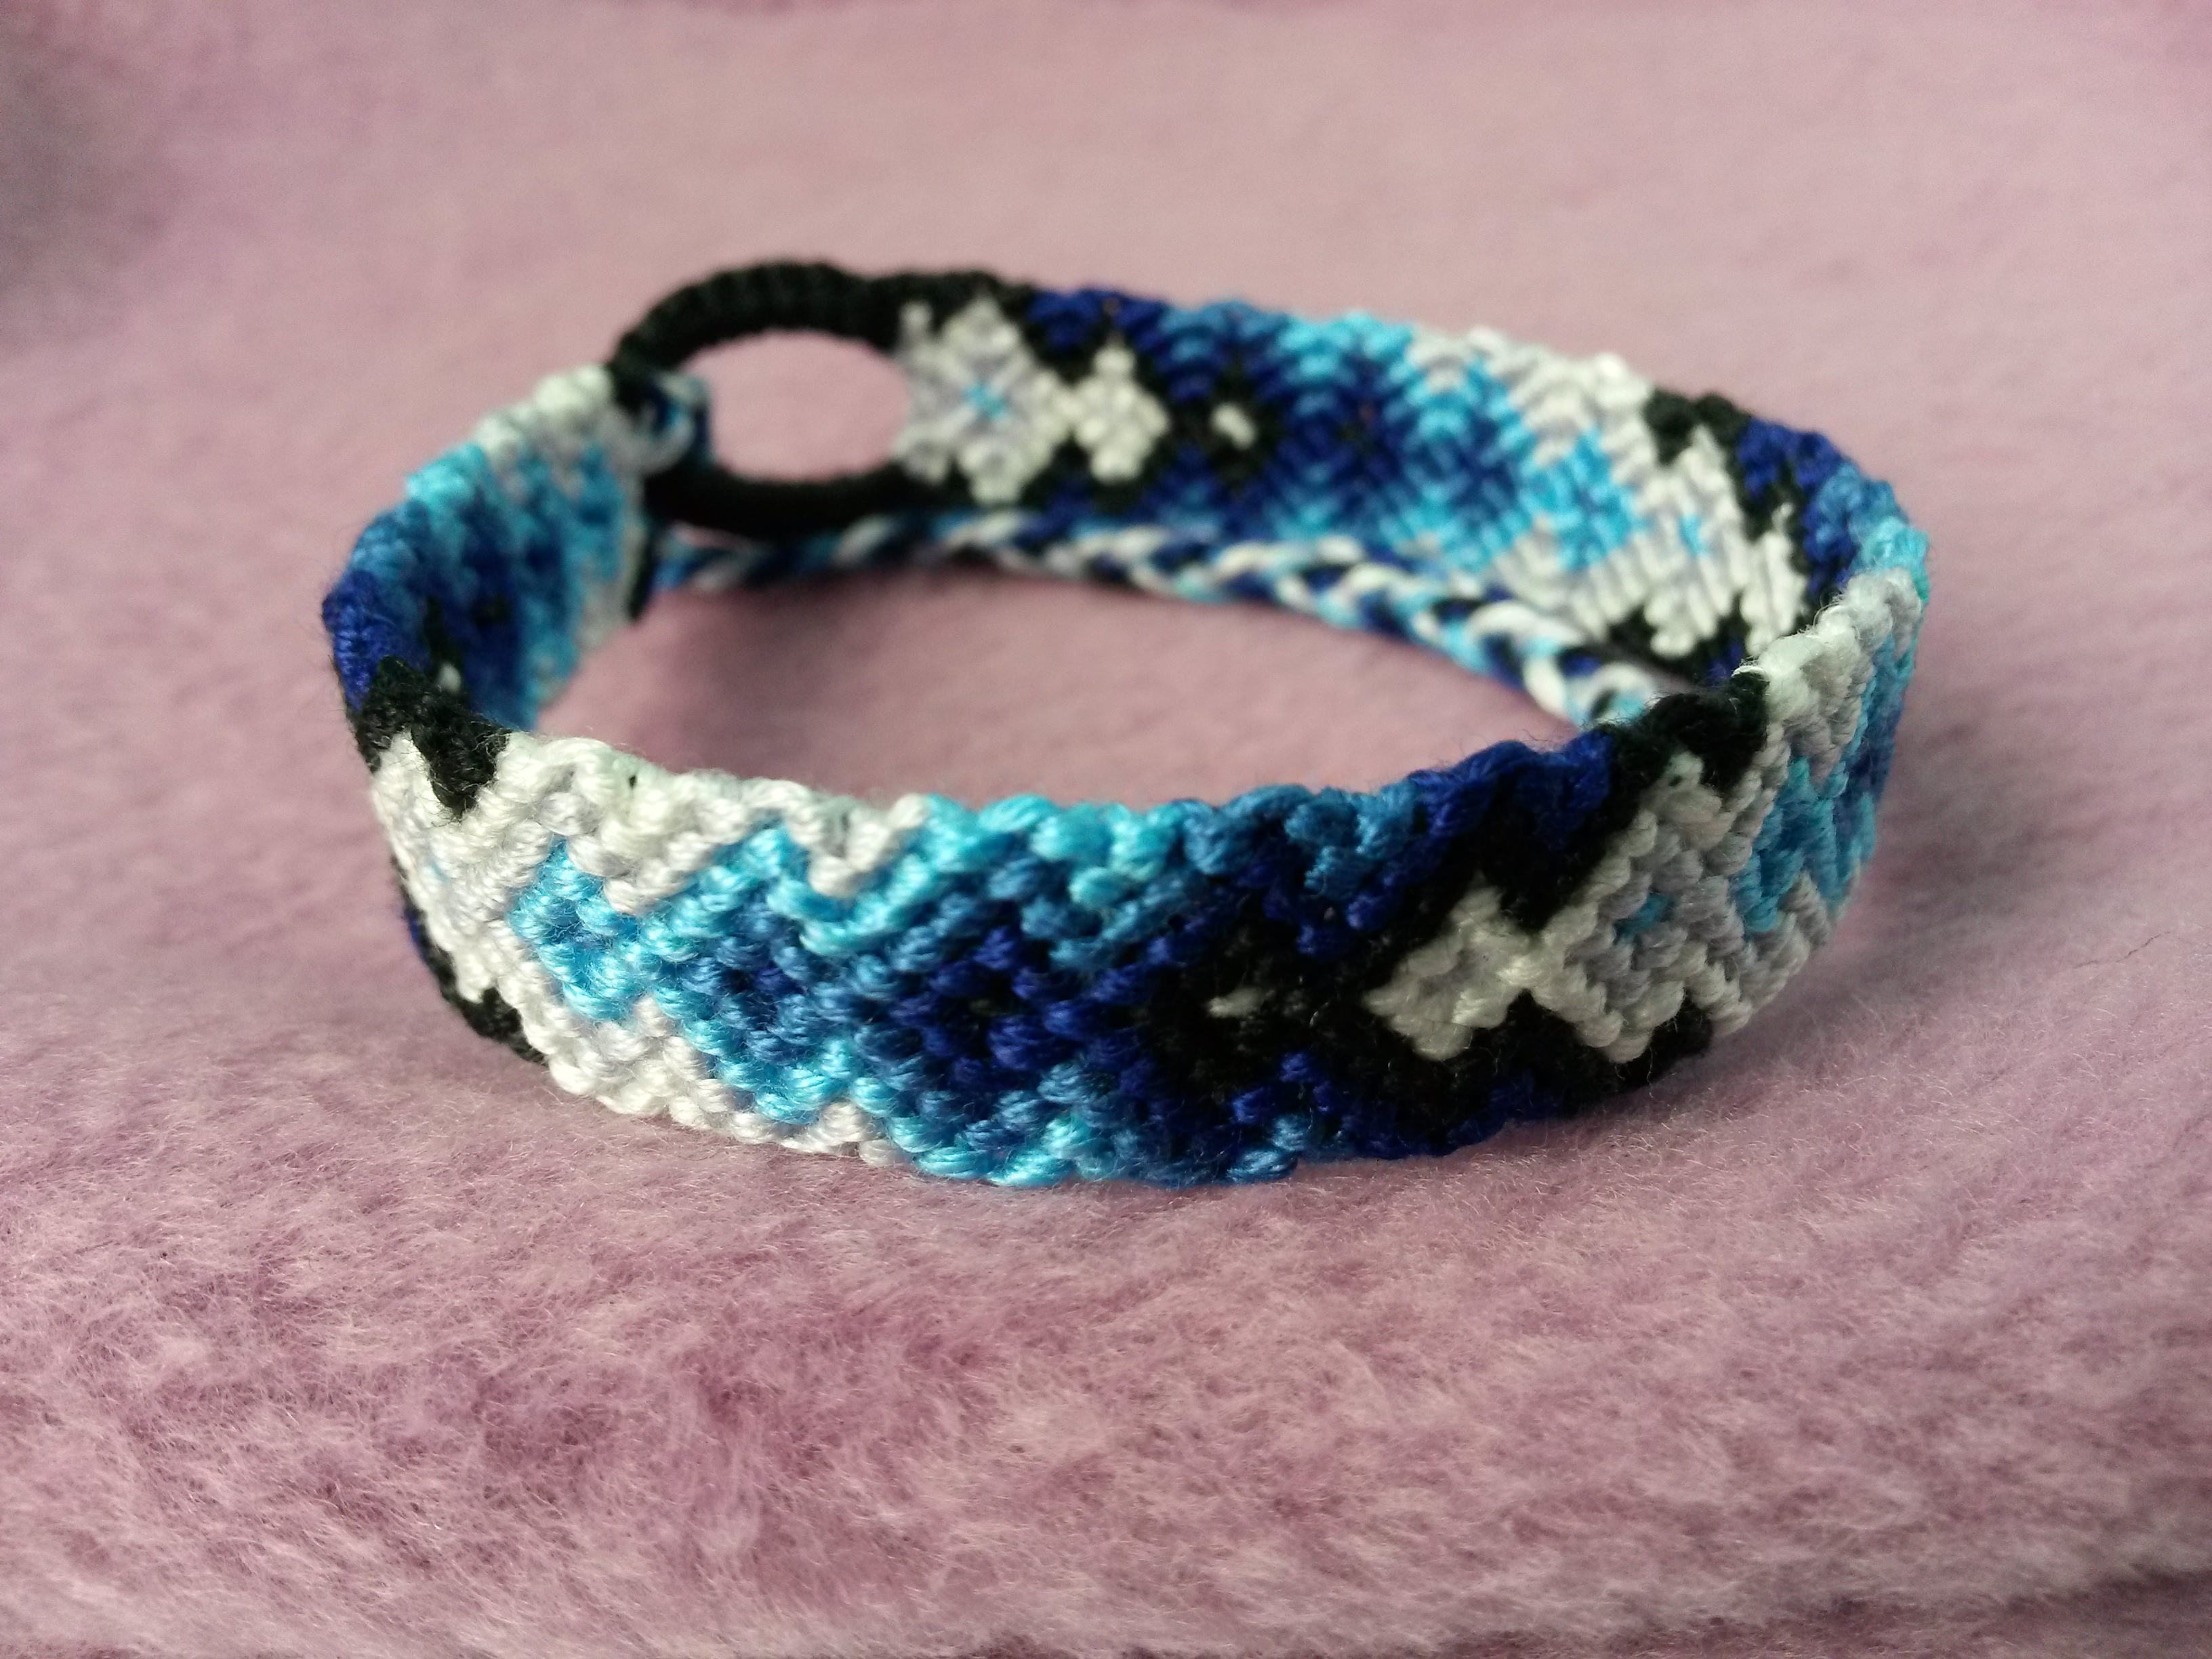 pattern bracelet craft patterns a friendship blue from blog com bracelets string arrow singapore kq by kqcraft s handicrafter gradient anklet